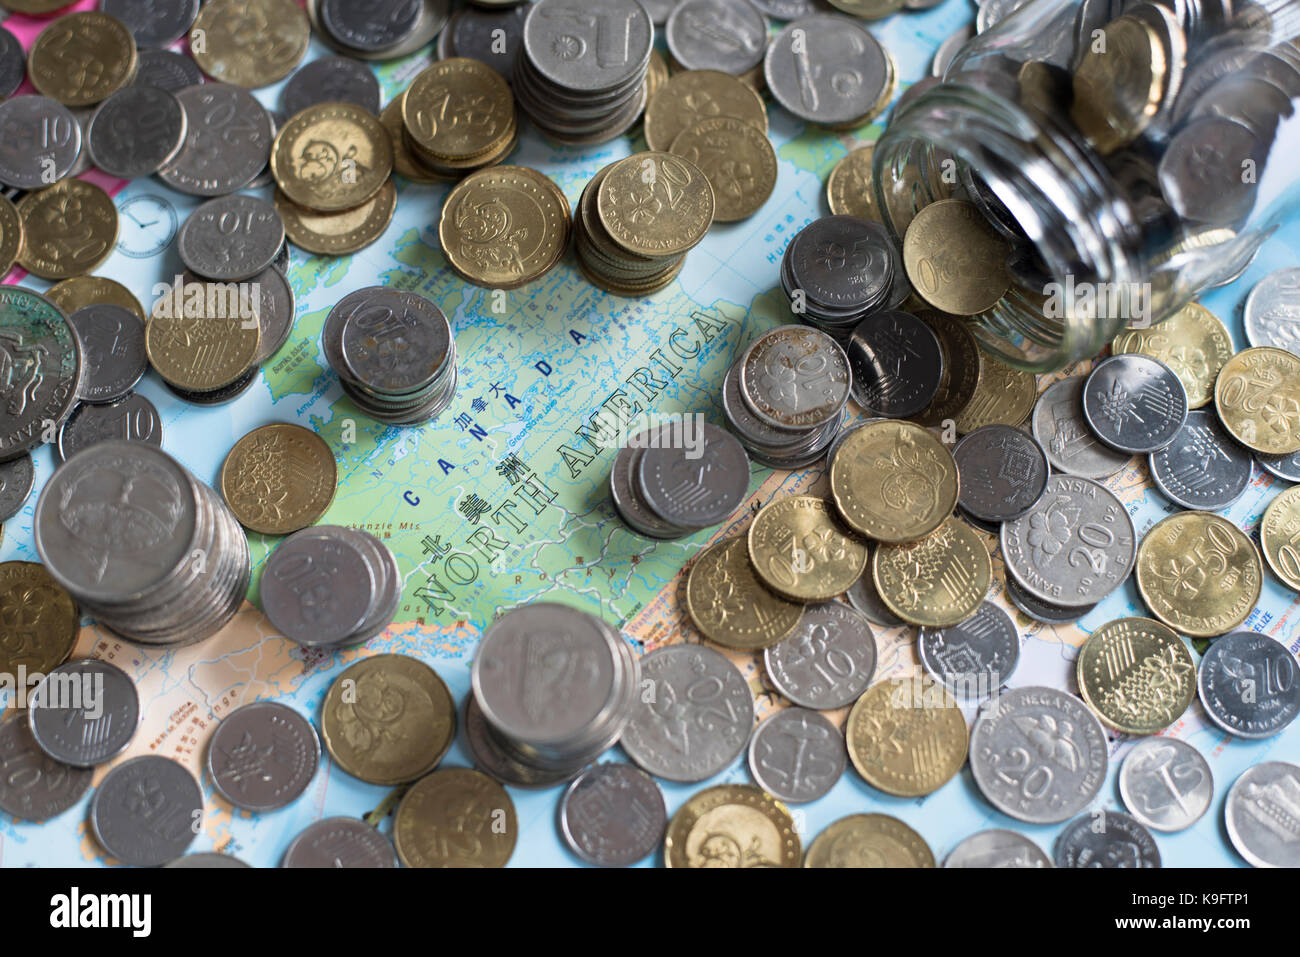 coins and glass jar on a map of 'North America'. Saving money for travel. saving concept and travel concept. - Stock Image